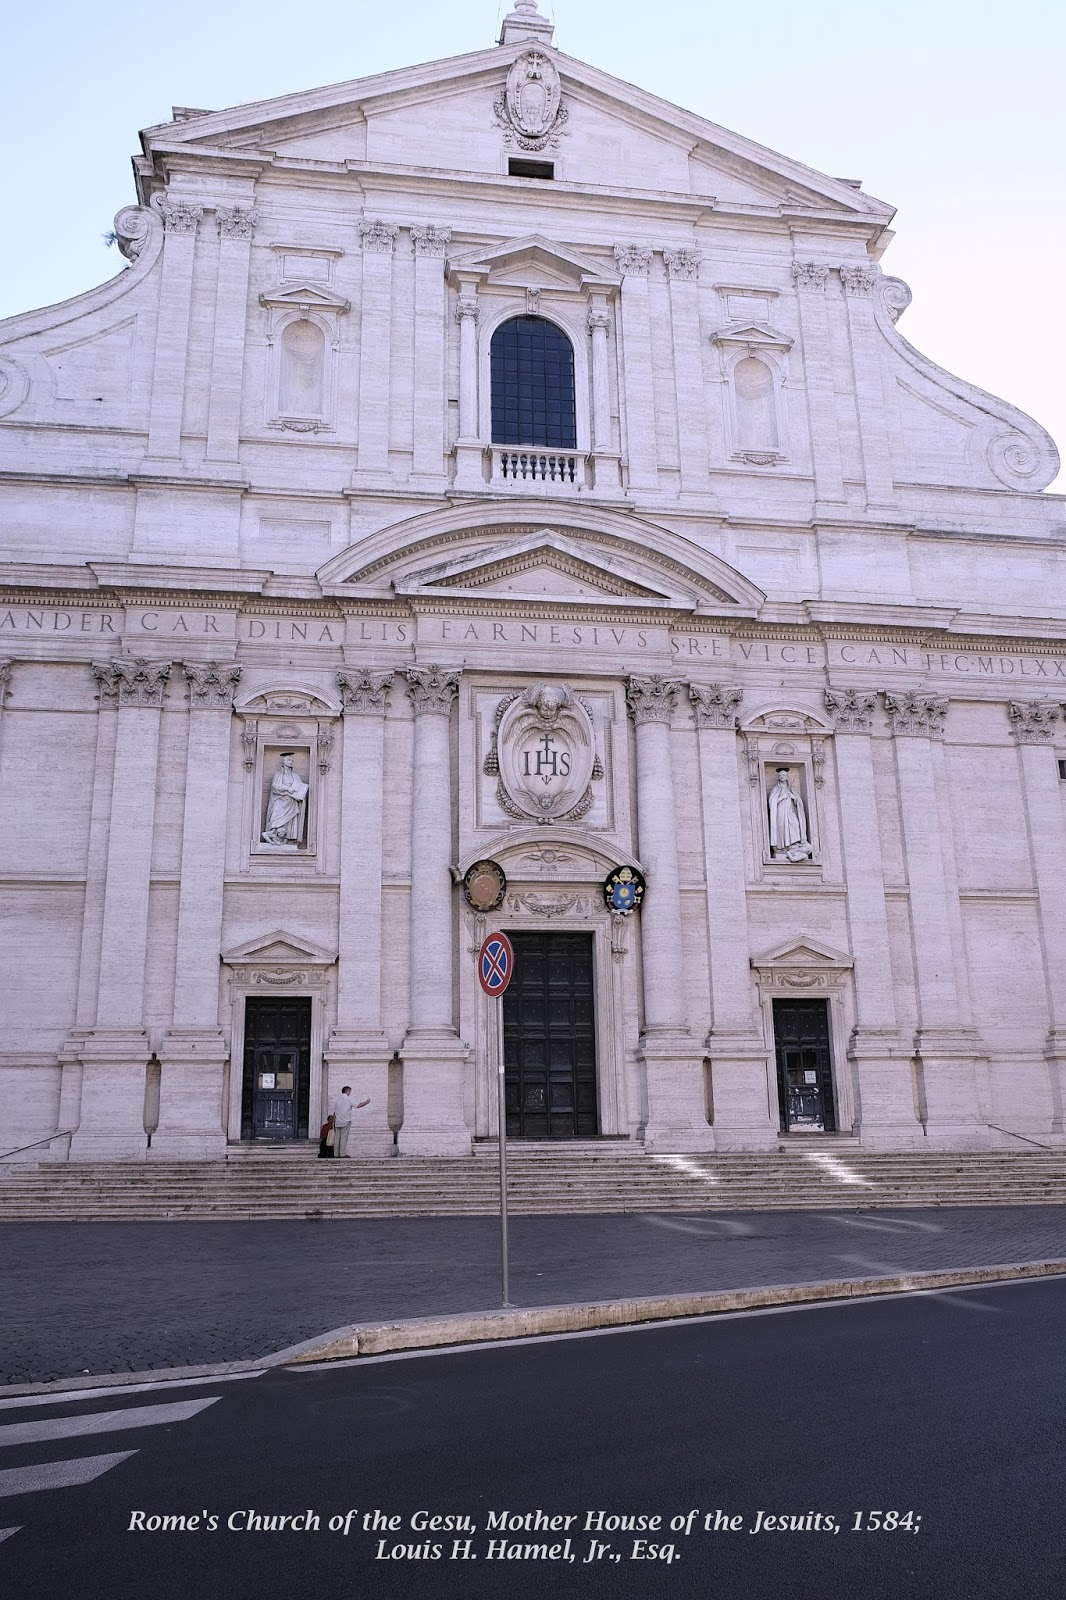 reformation rome - photo#11